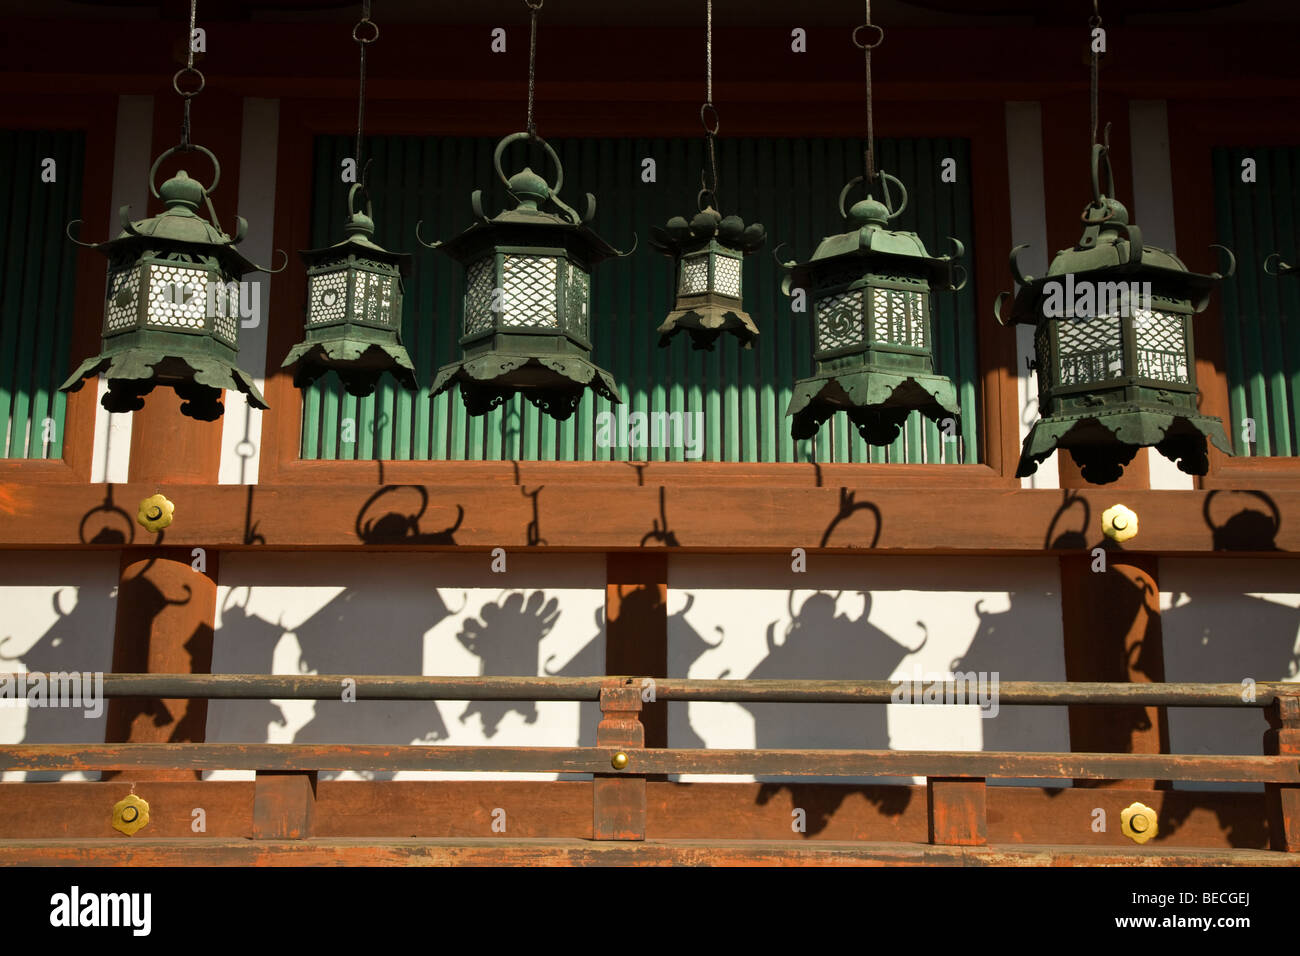 Japanese Lanterns at Kasuga Taisha Shrine in Nara - Stock Image